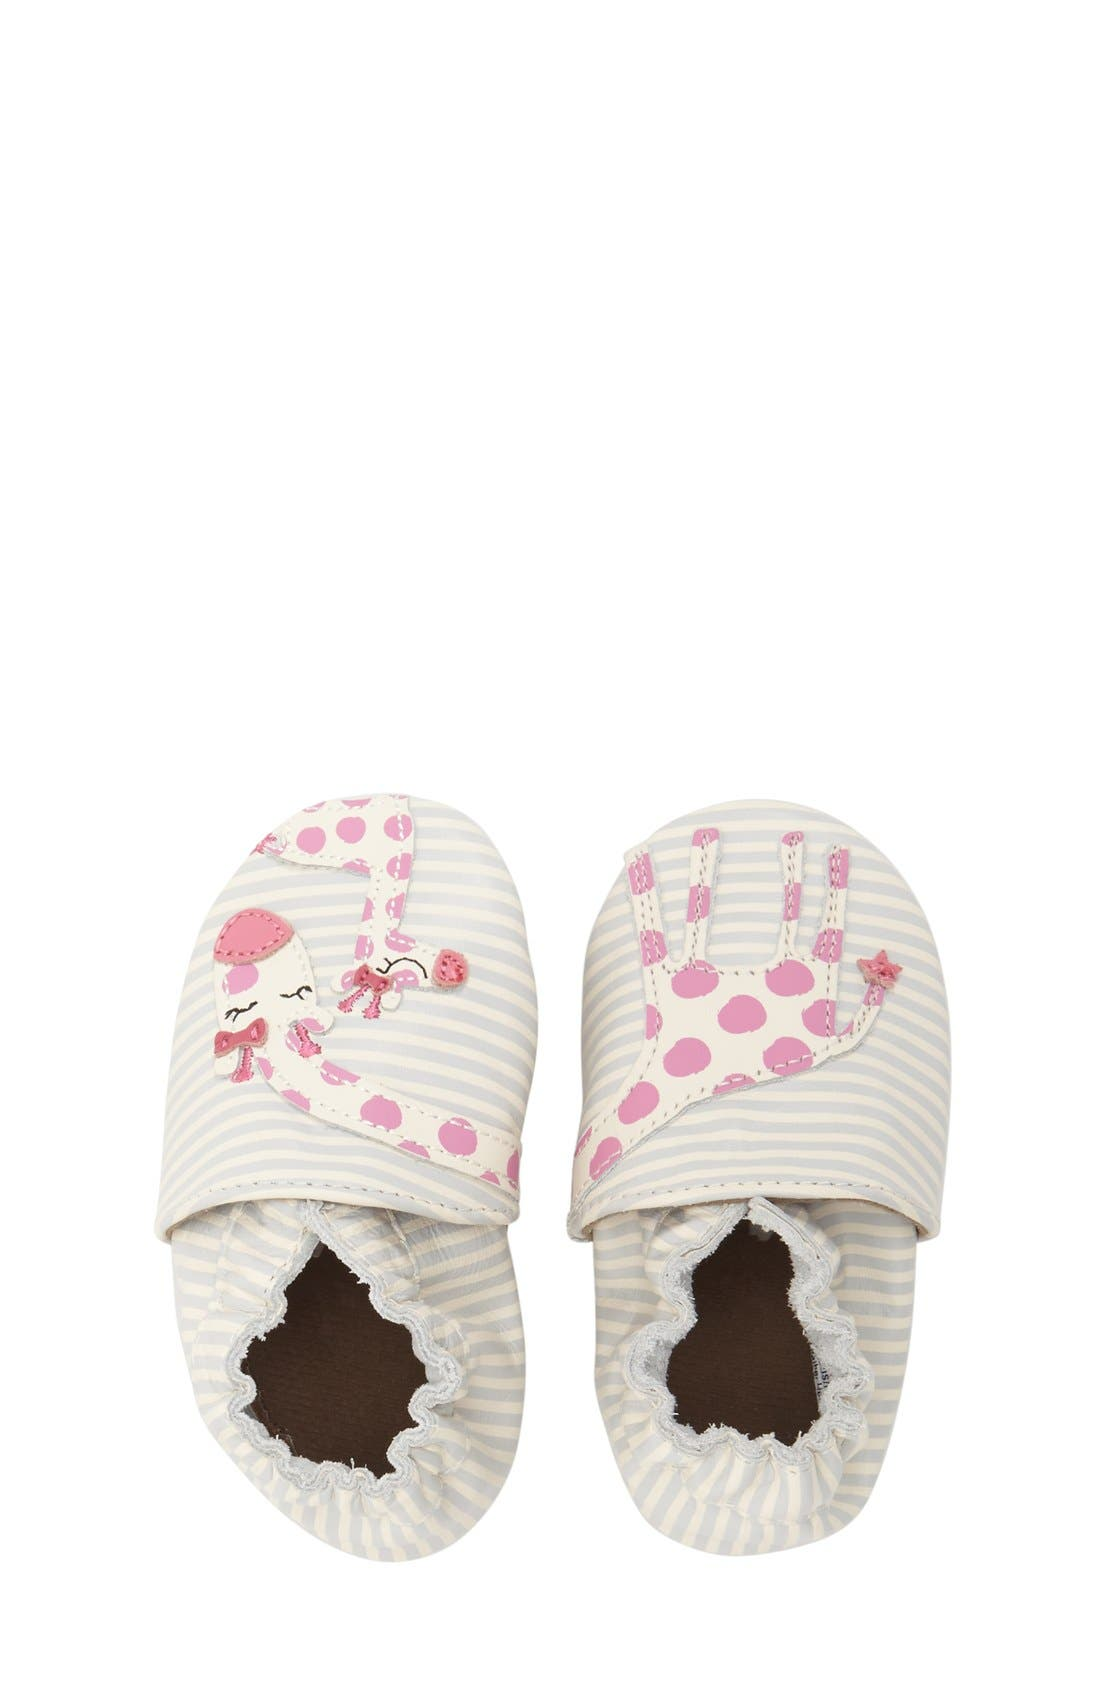 'Reaching for the Stars' Giraffe Crib Shoe,                             Alternate thumbnail 3, color,                             BEIGE